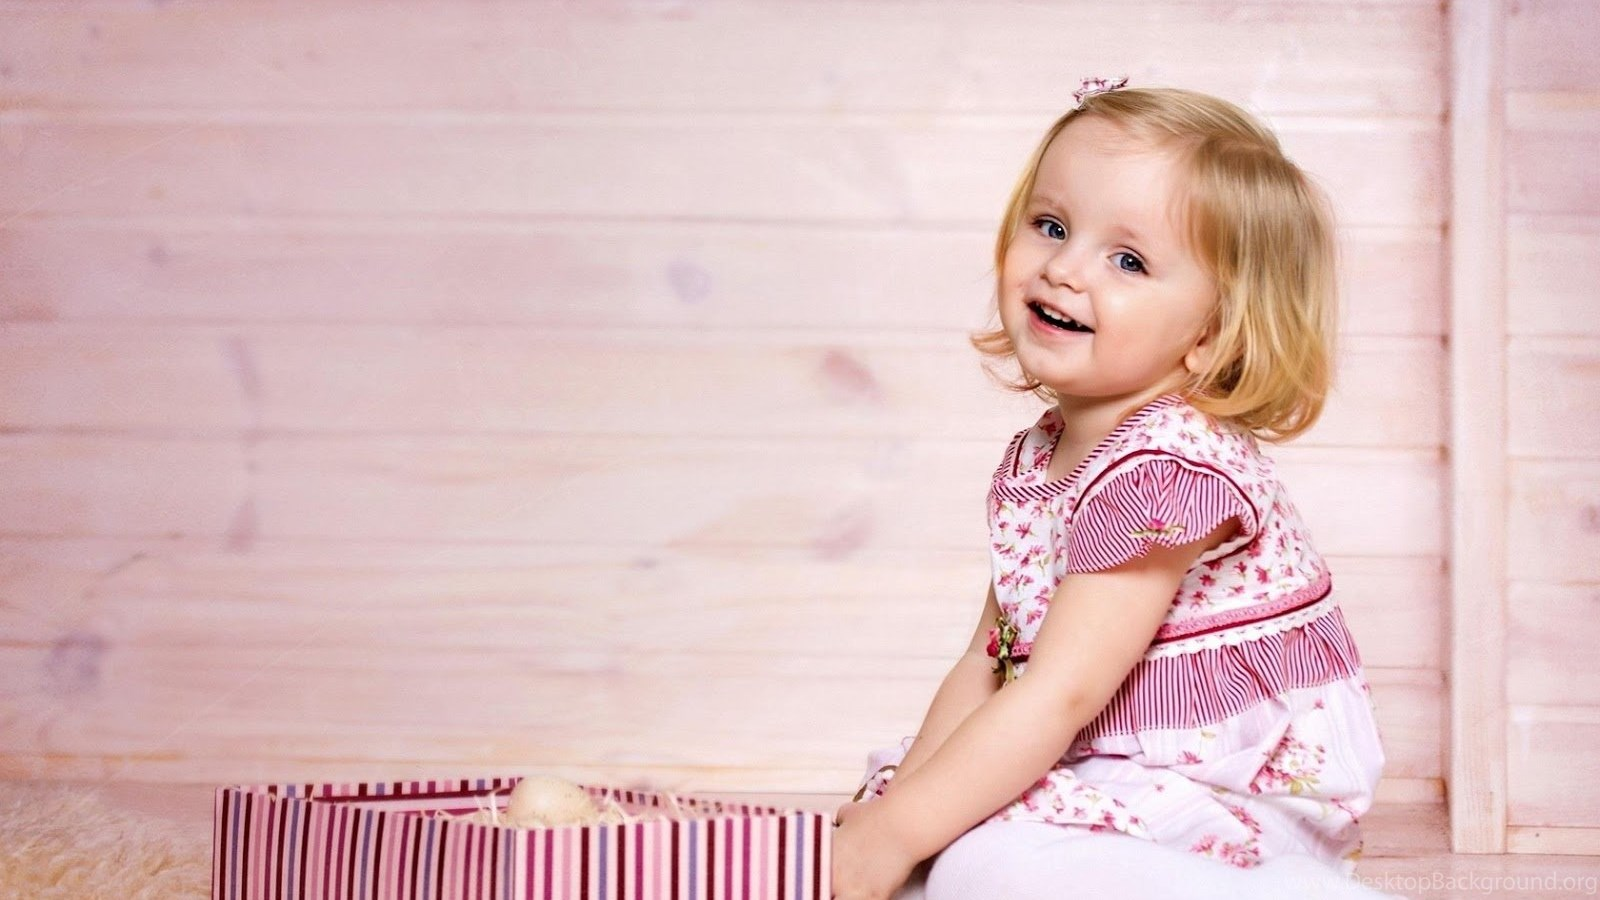 53 cute baby girl hd pc wallpapers 274 baby girls hd wallpapers popular voltagebd Gallery